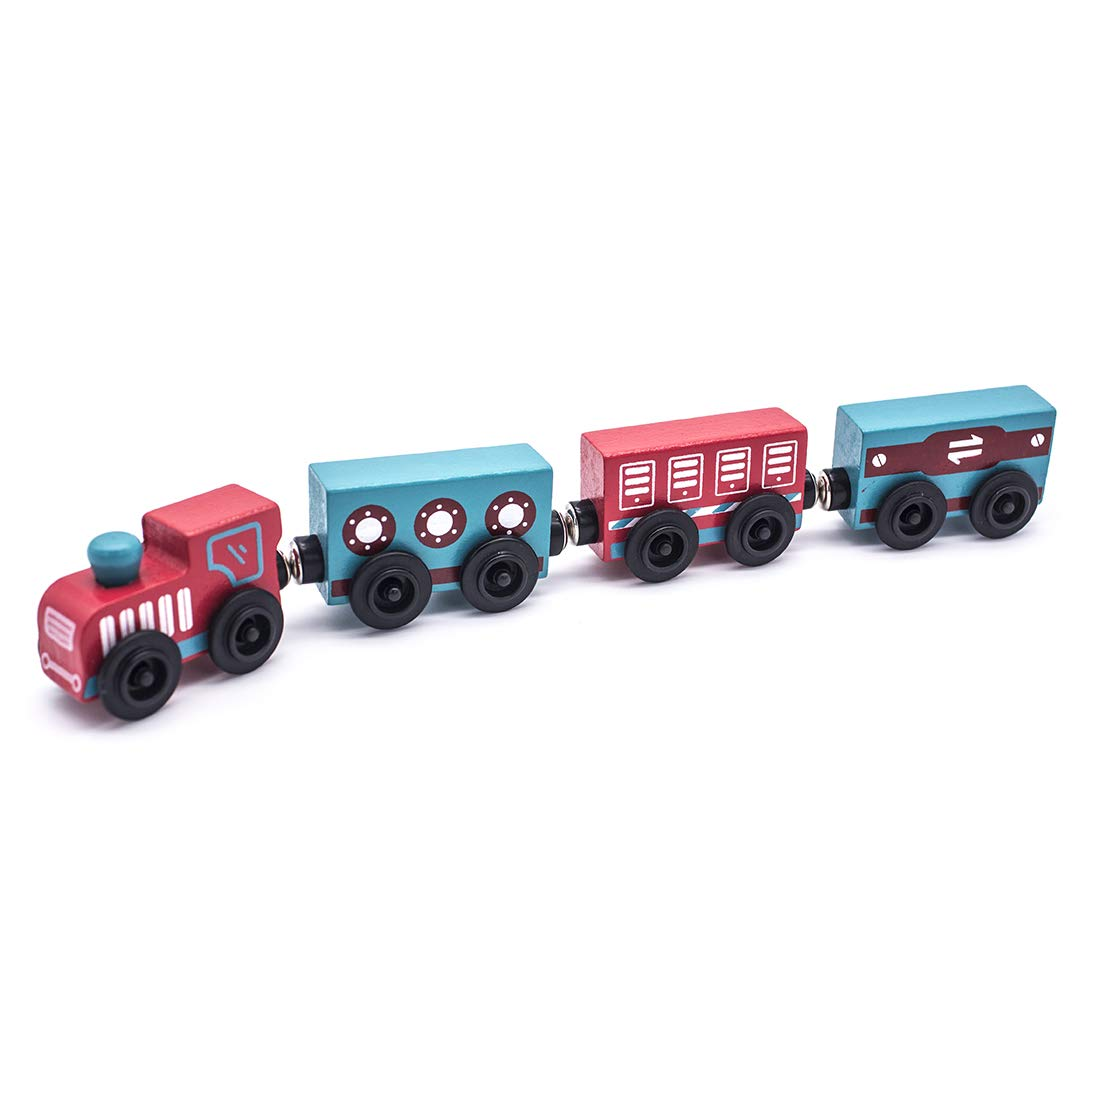 MQ Wooden Magnetic Train Set Toy Train Set - 4 Pieces for Kids 3+ (The Little Country Train)